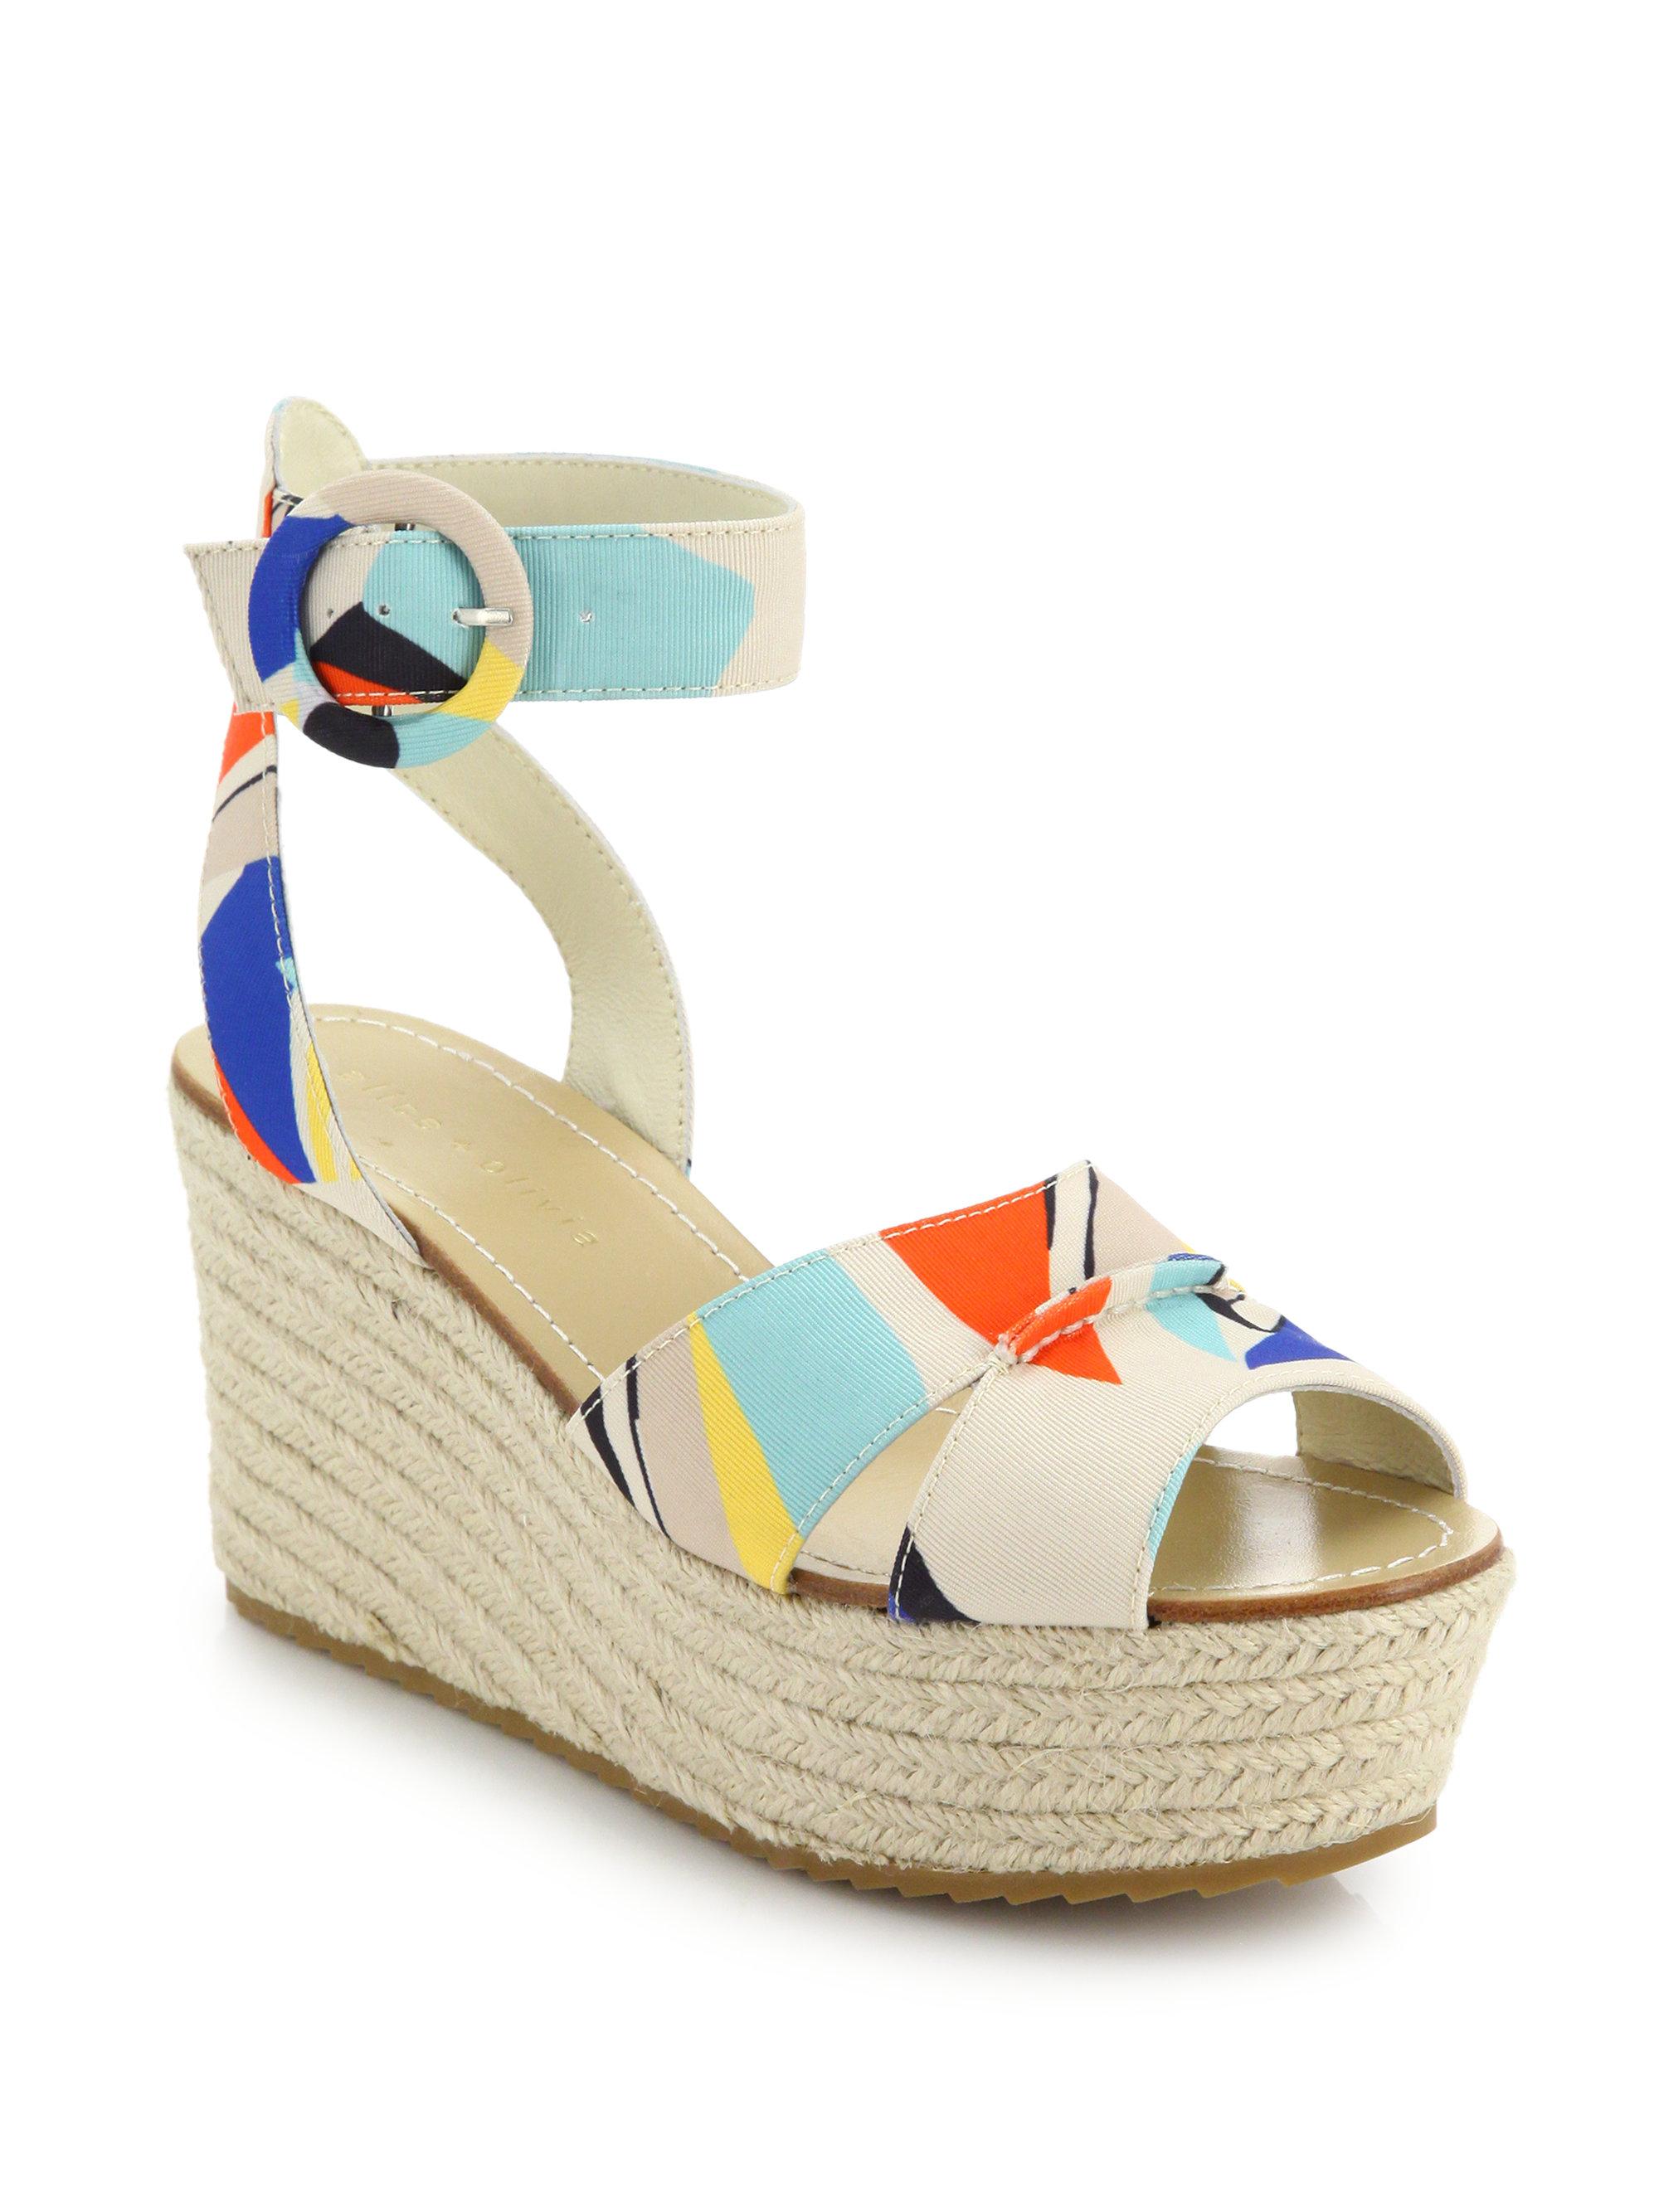 Alice + Olivia Printed Canvas Espadrilles cheap buy authentic cheap prices reliable WCLXUbdL6